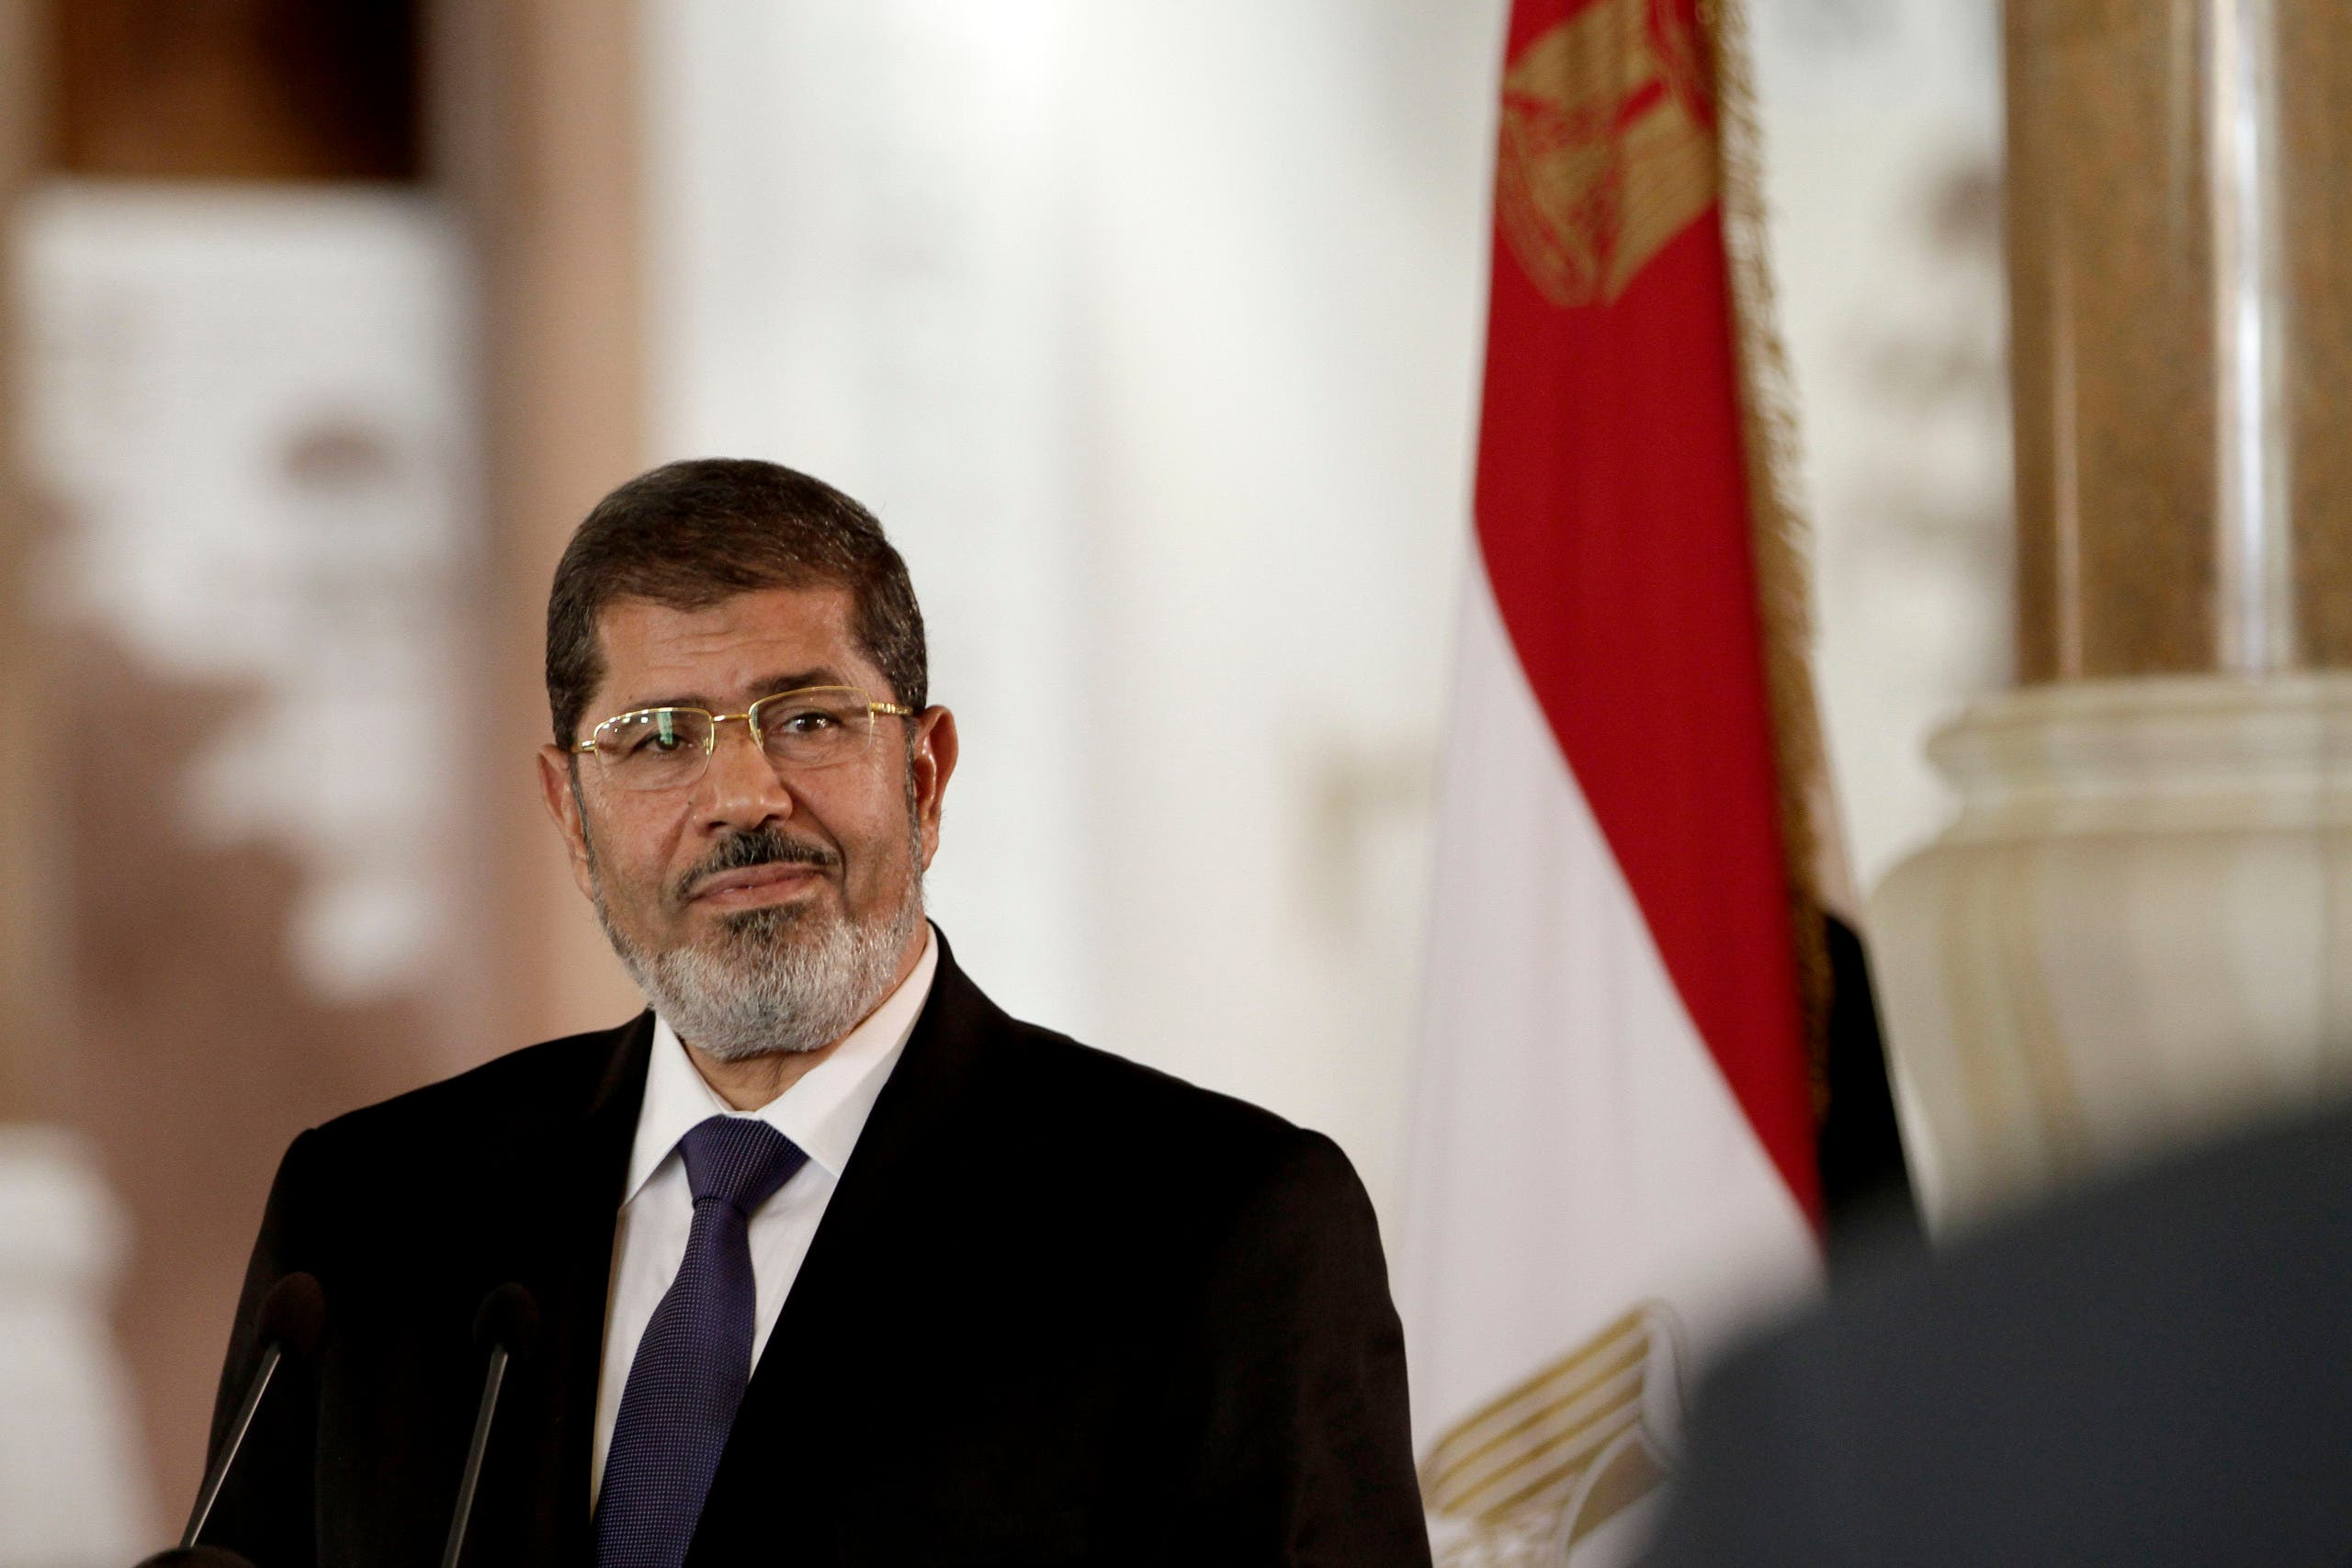 Mohammed Morsi during a news conference in Cairo on July 13, 2012. (AP)